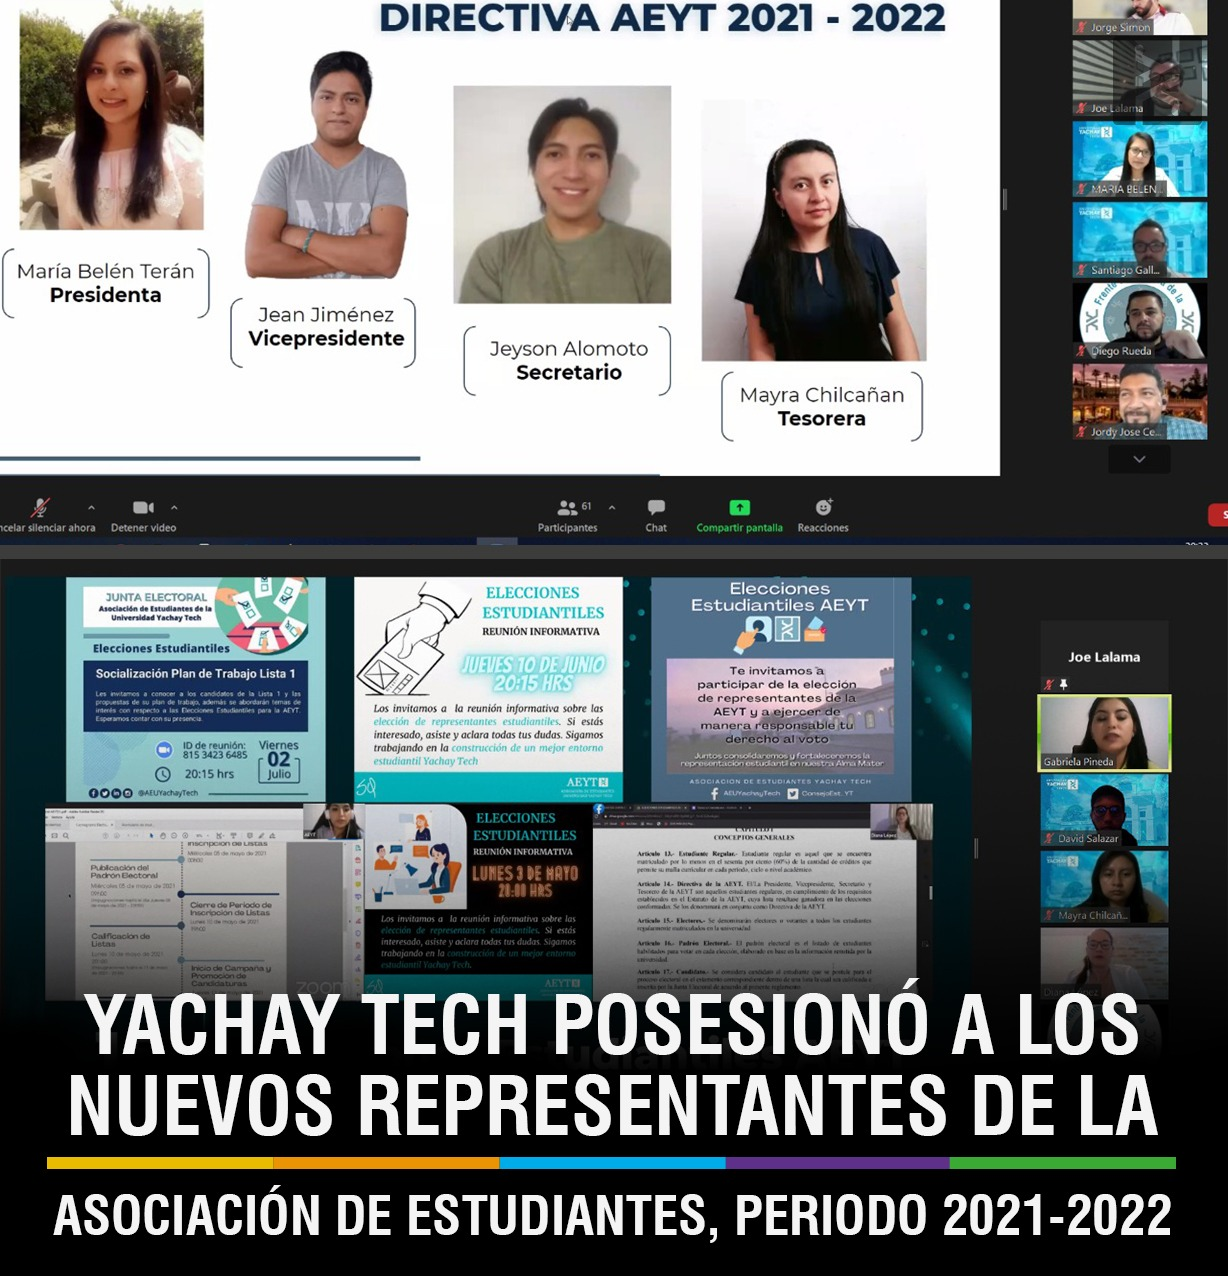 NEW REPRESENTATIVES OF THE STUDENT ASSOCIATION OF YACHAY TECH TAKE OFFICE FOR 2021-2022